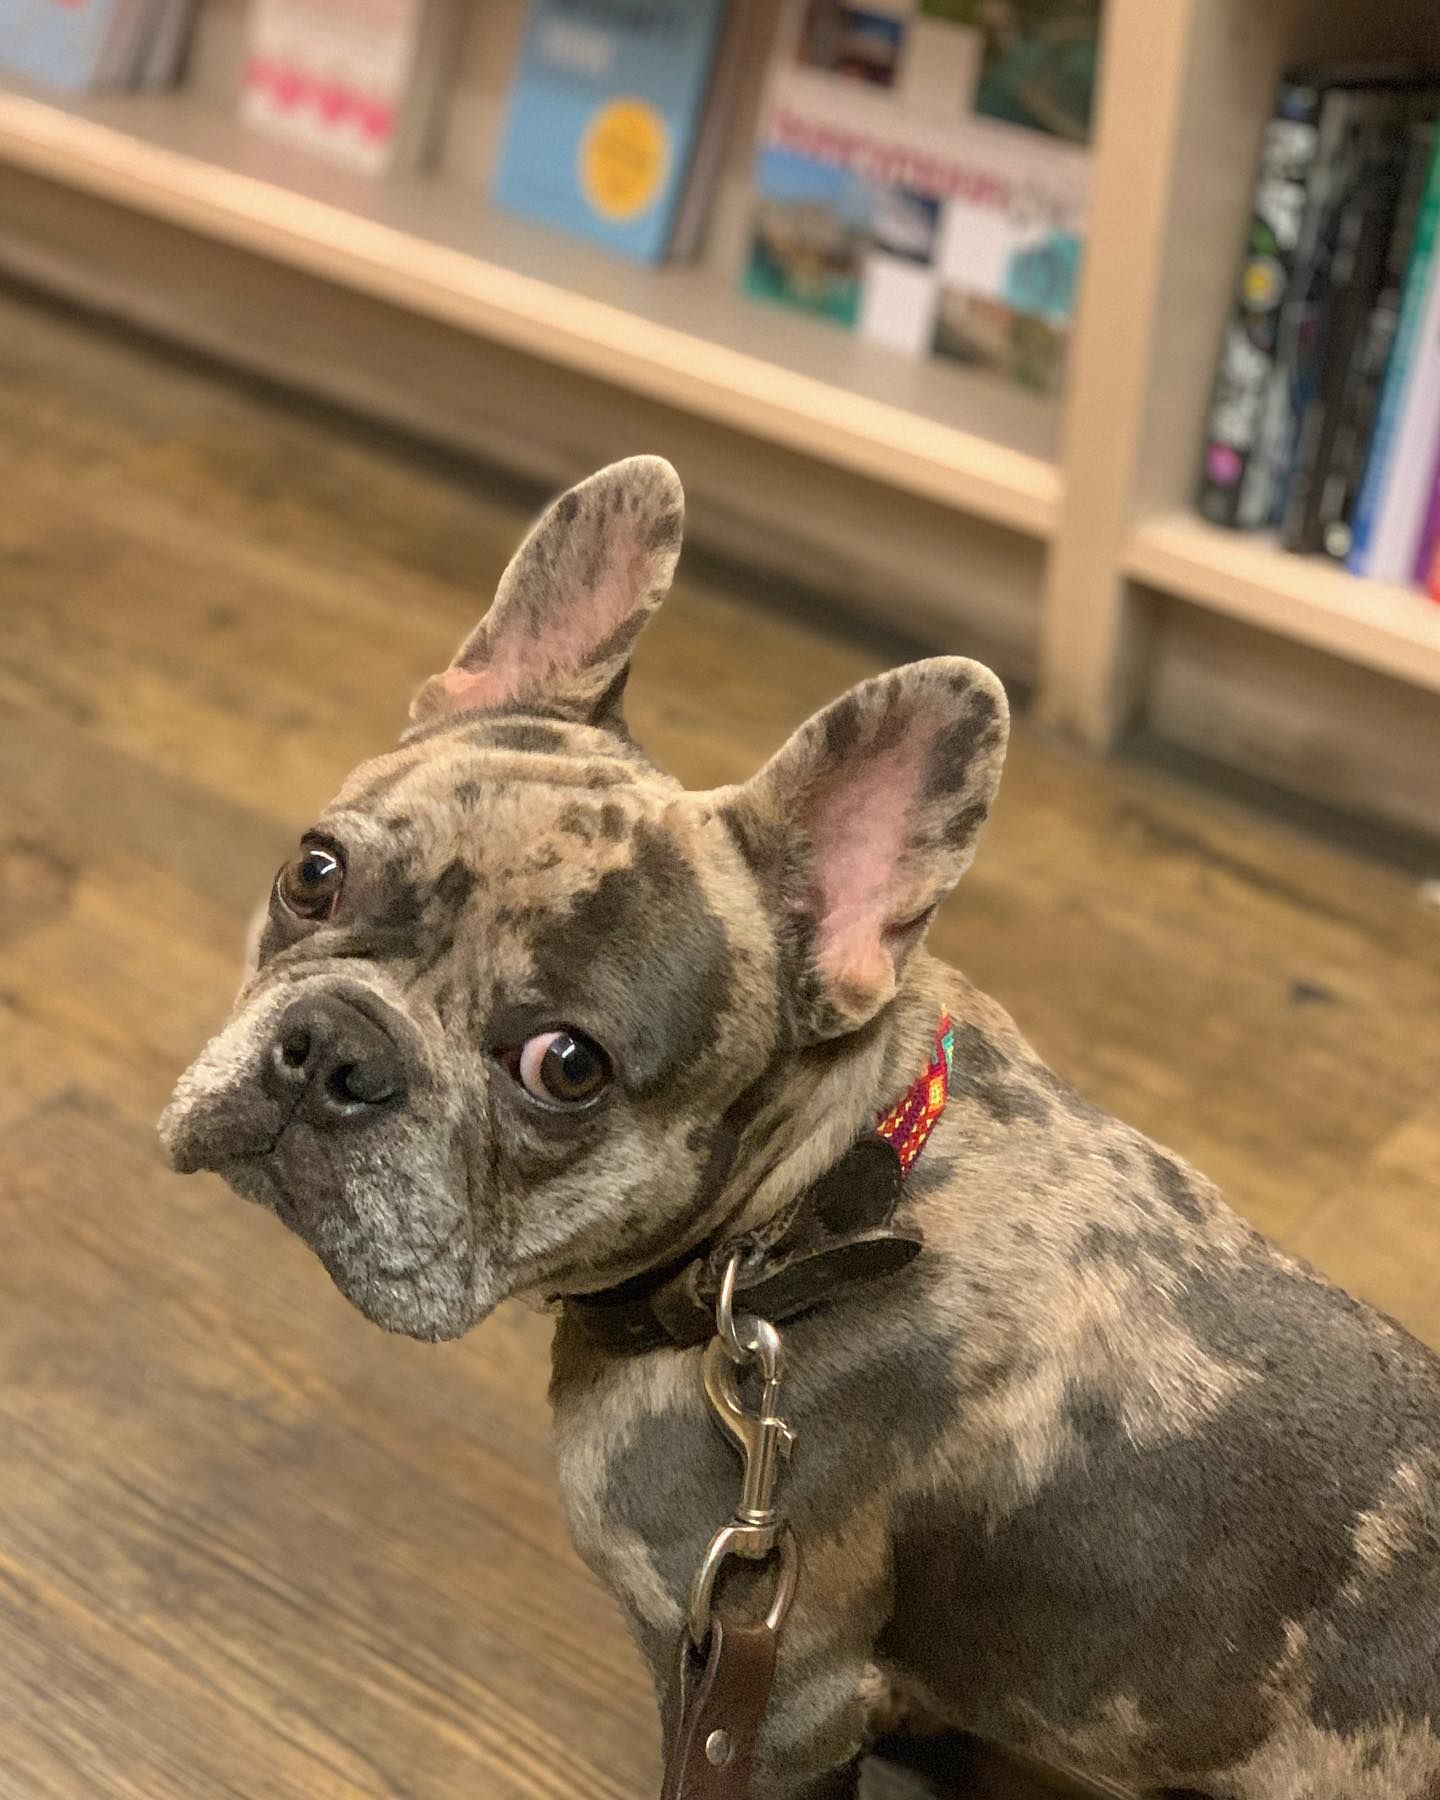 When the humans are all fired up about their new year resolutions, so we end up at a bookstore instead of a park... 📚 • • • • • • • • #frenchbulldog #frenchiesofinstagram #frenchie #puppies #puppiesofinstagram #puppylove #ziggy = ( #📷 @ziggythefrenchbully )